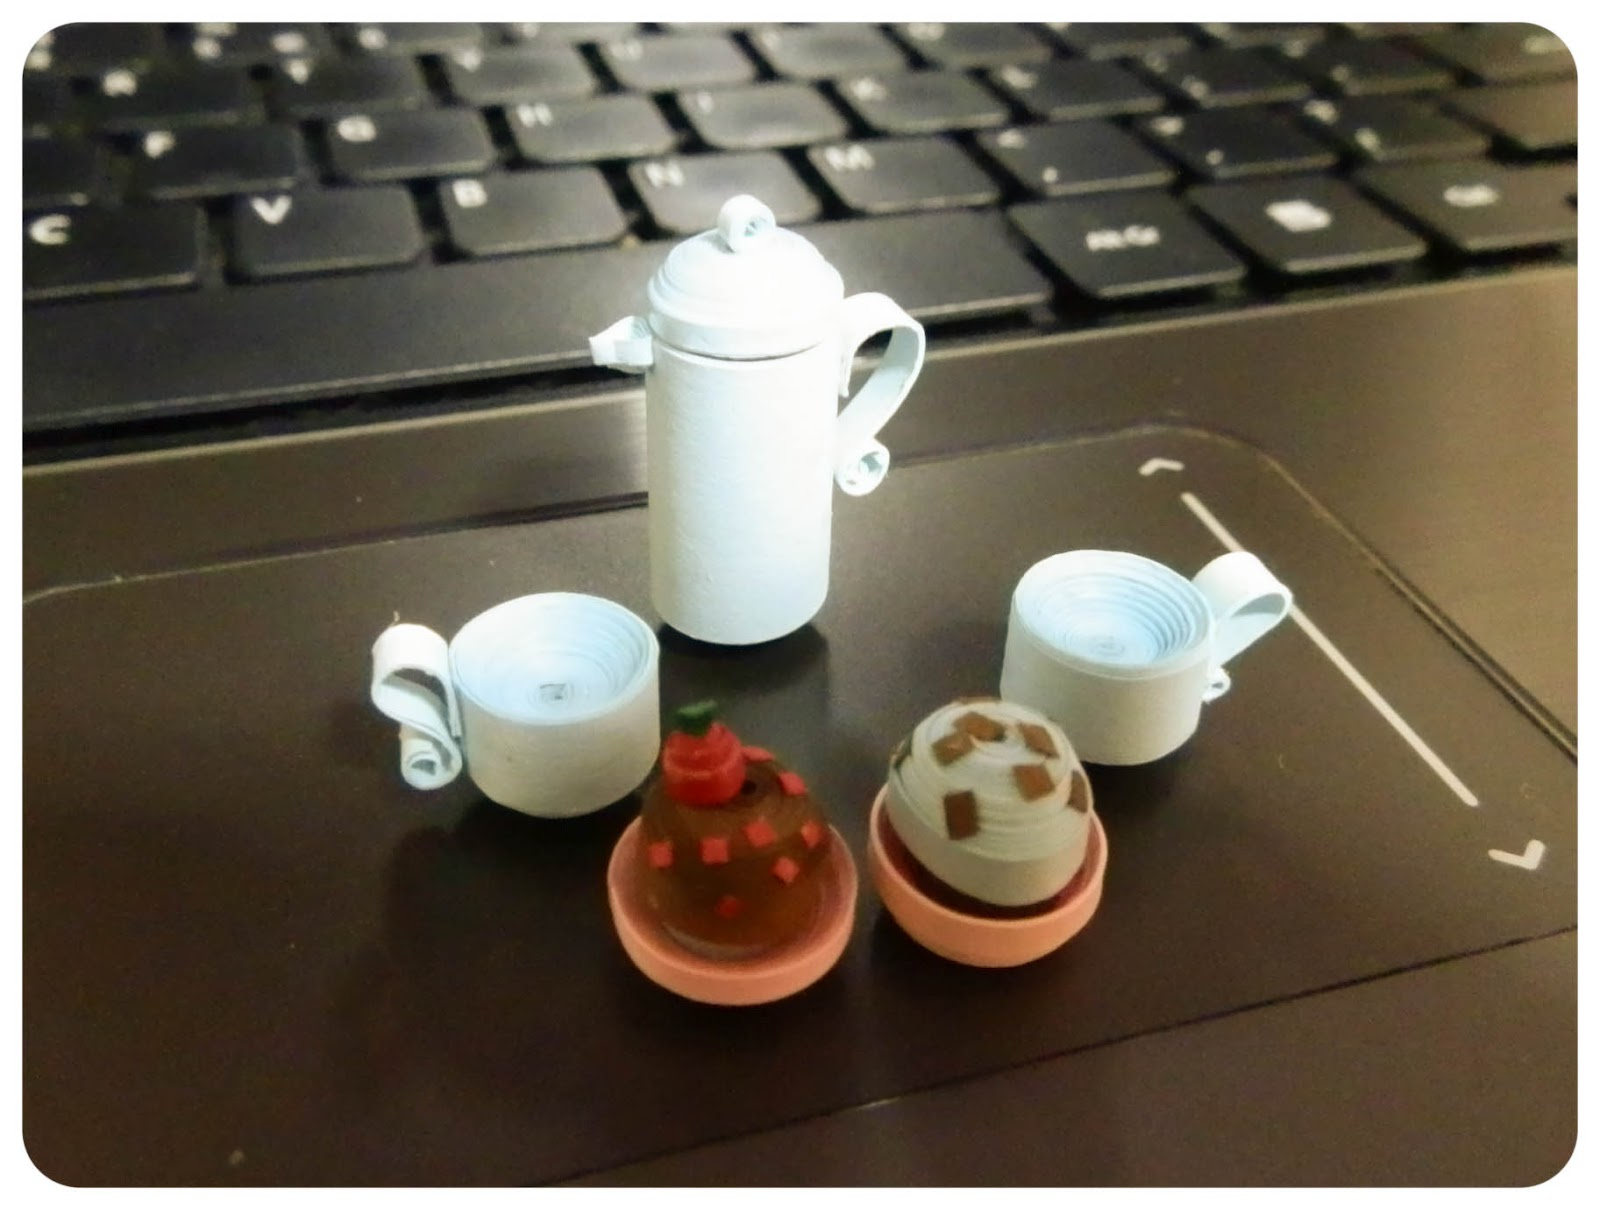 Paper Charm Creations: Miniature Coffee pot and coffee cup - photo#34